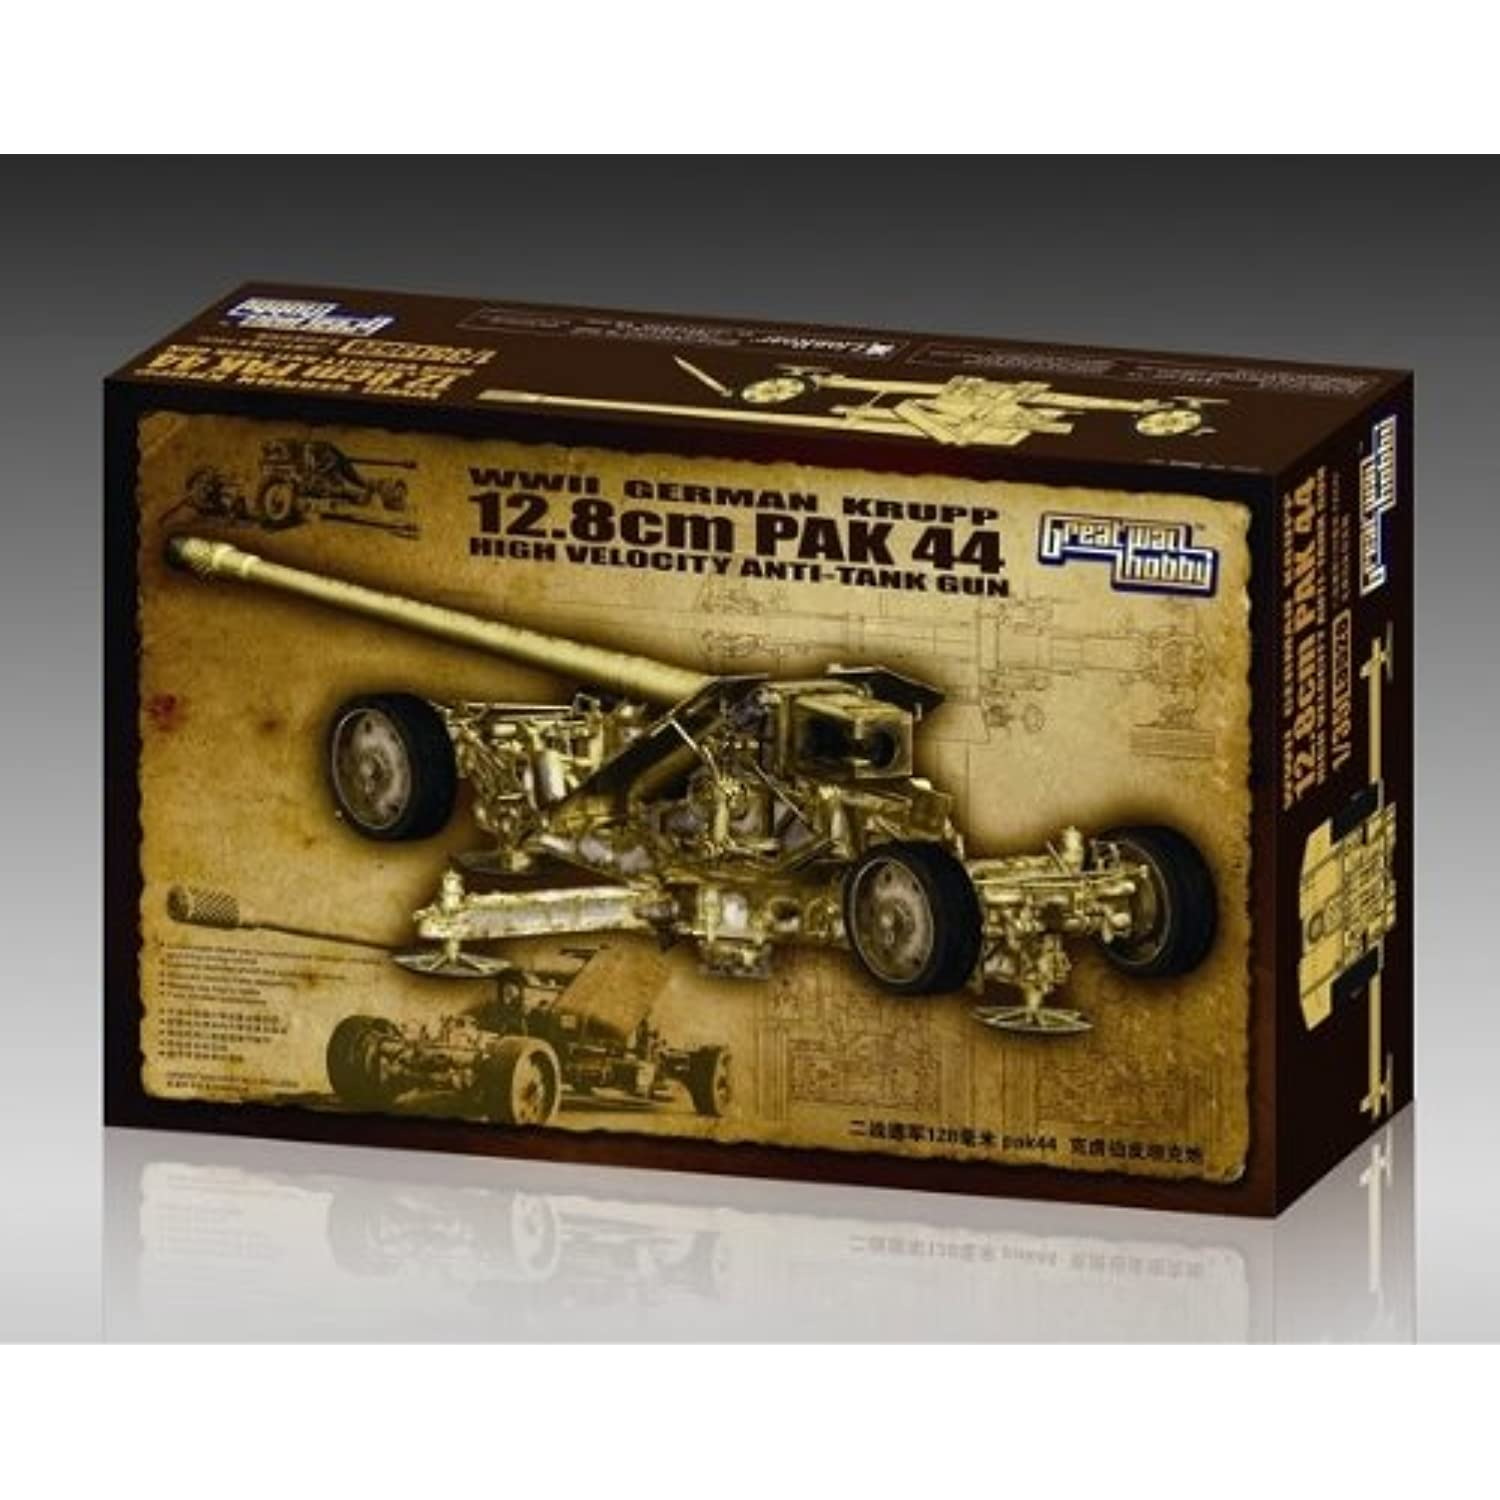 Great Great Great Wall Hobby 1:35 - WWII Krupp 12.8cm Pak44 ATGun - GWH3526 1fa15e